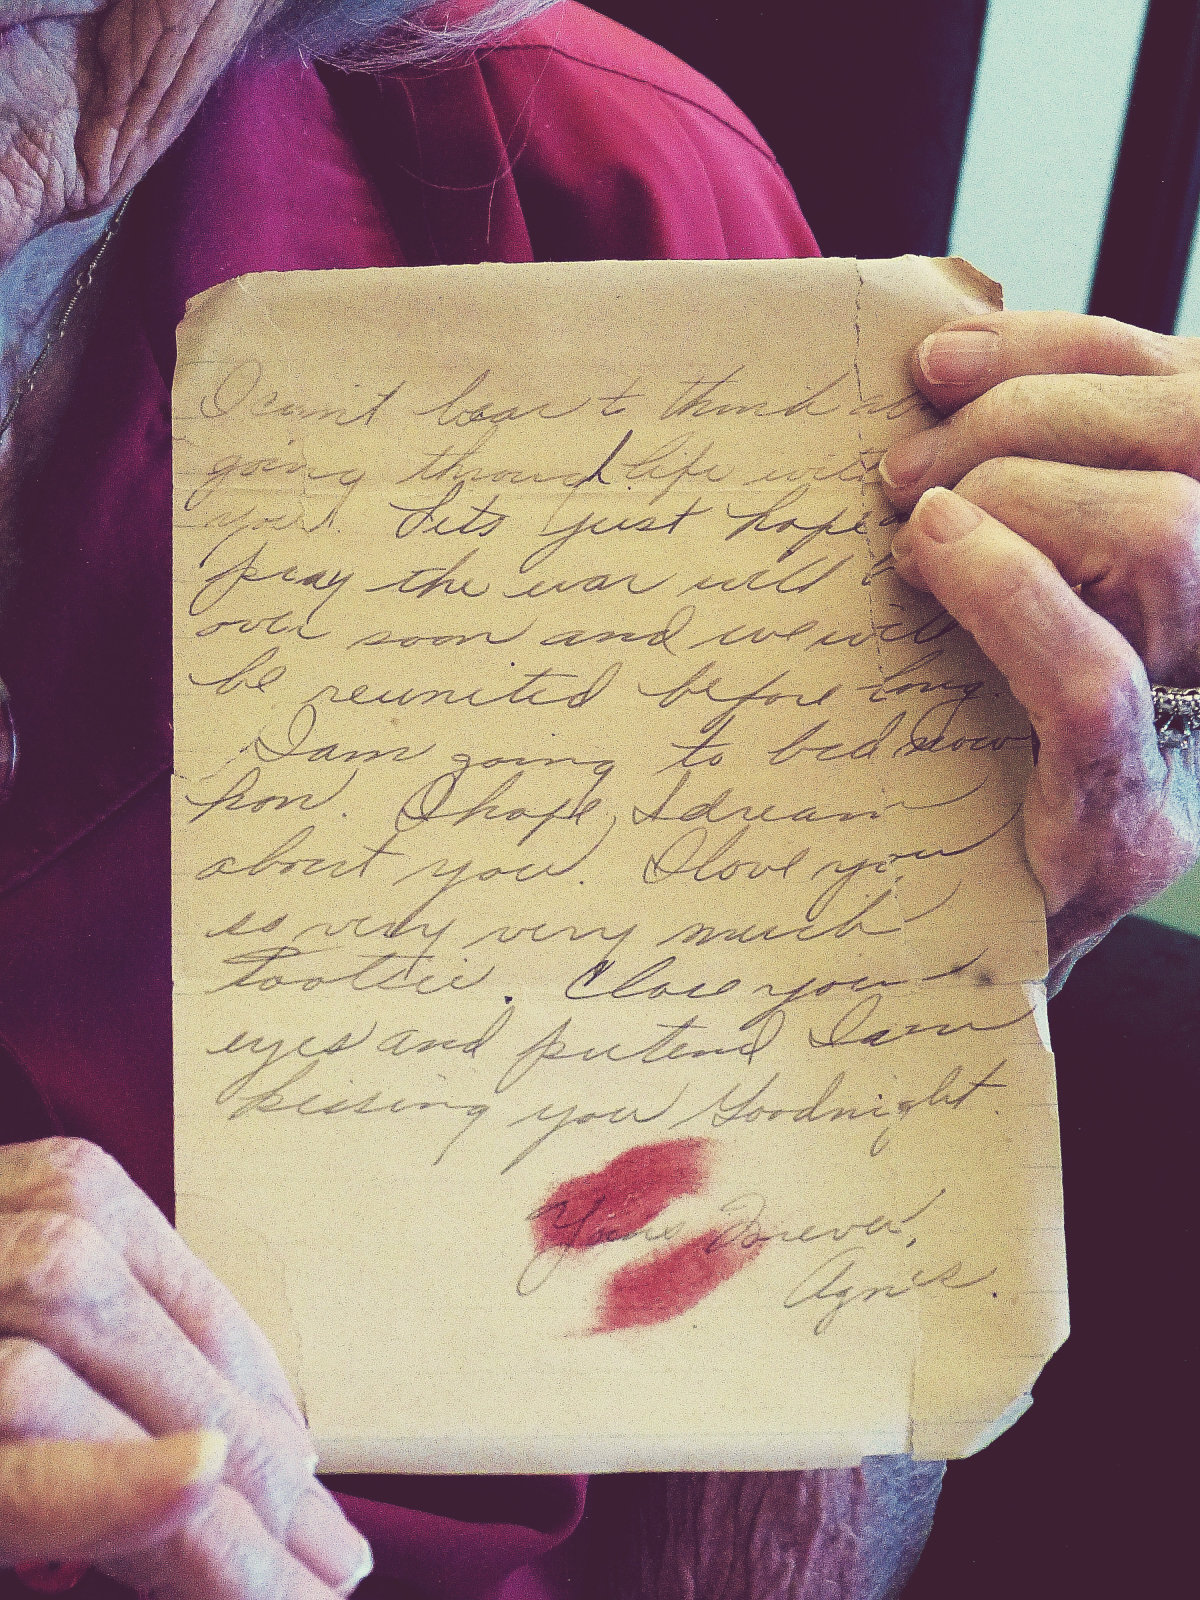 Grandma holding an original letter that she wrote to my Grandpa during WWII.